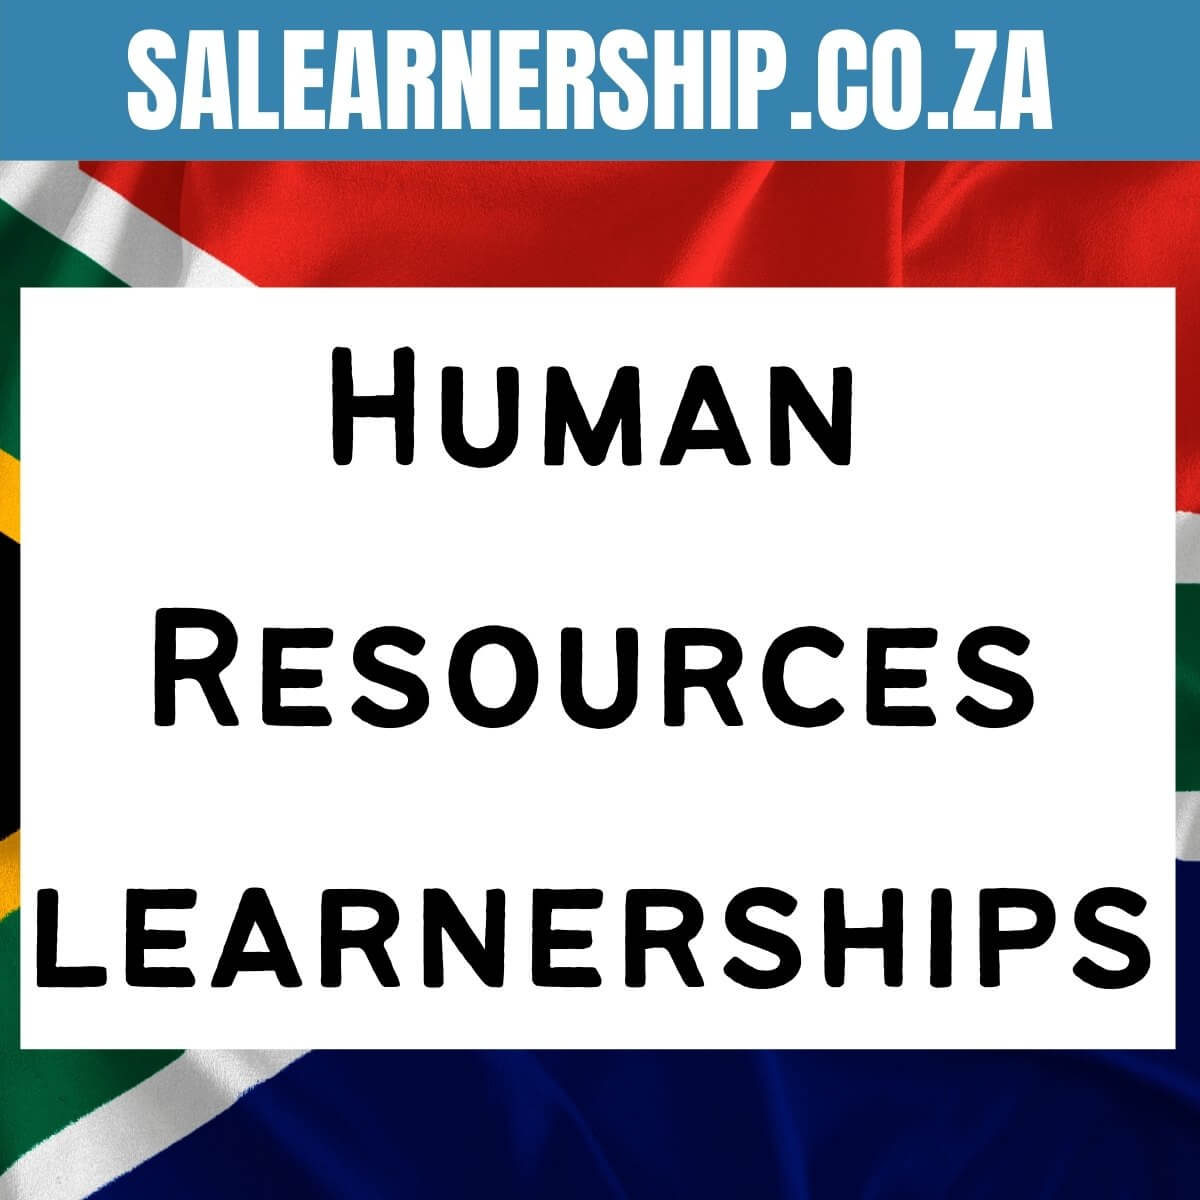 Human Resources learnerships